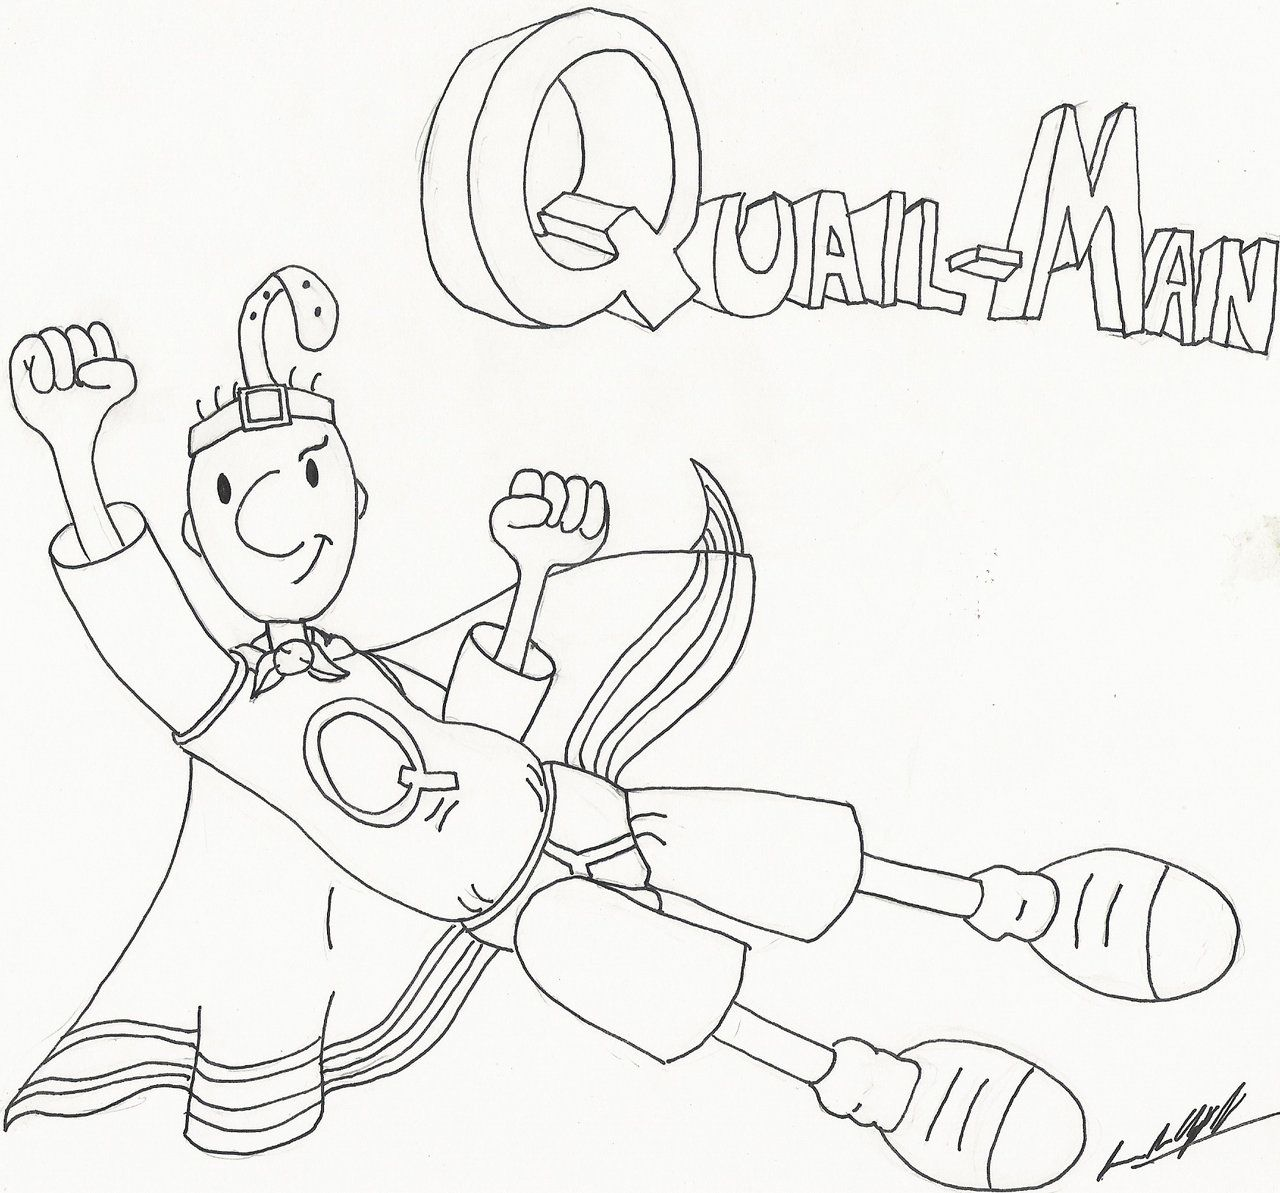 Doug Quail Man Coloring Pages Quail Man Lines By Infrafan